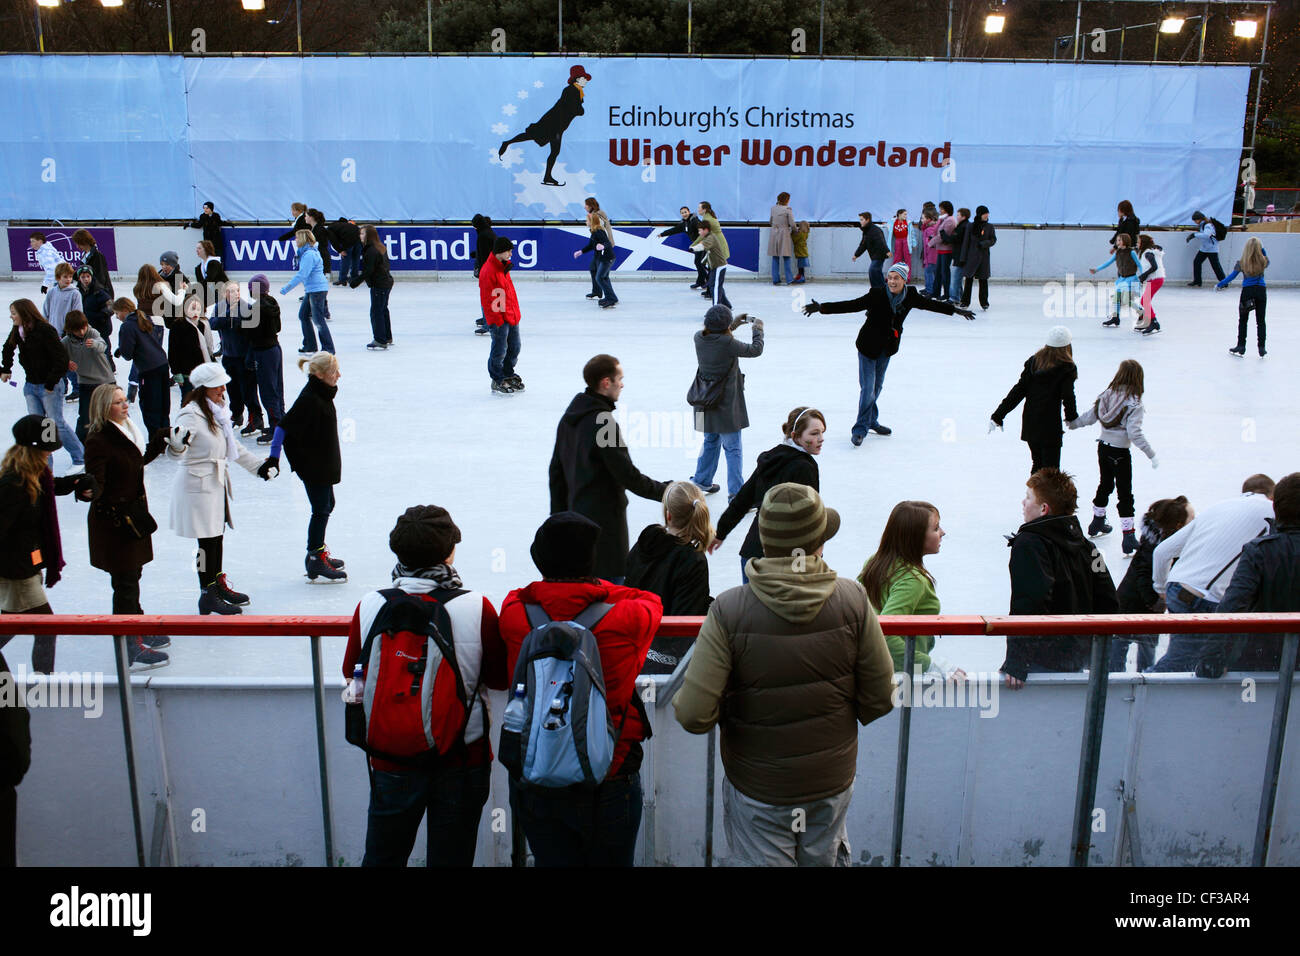 An ice ring in Princes Street Gardens at Christmas in Edinburgh. Stock Photo